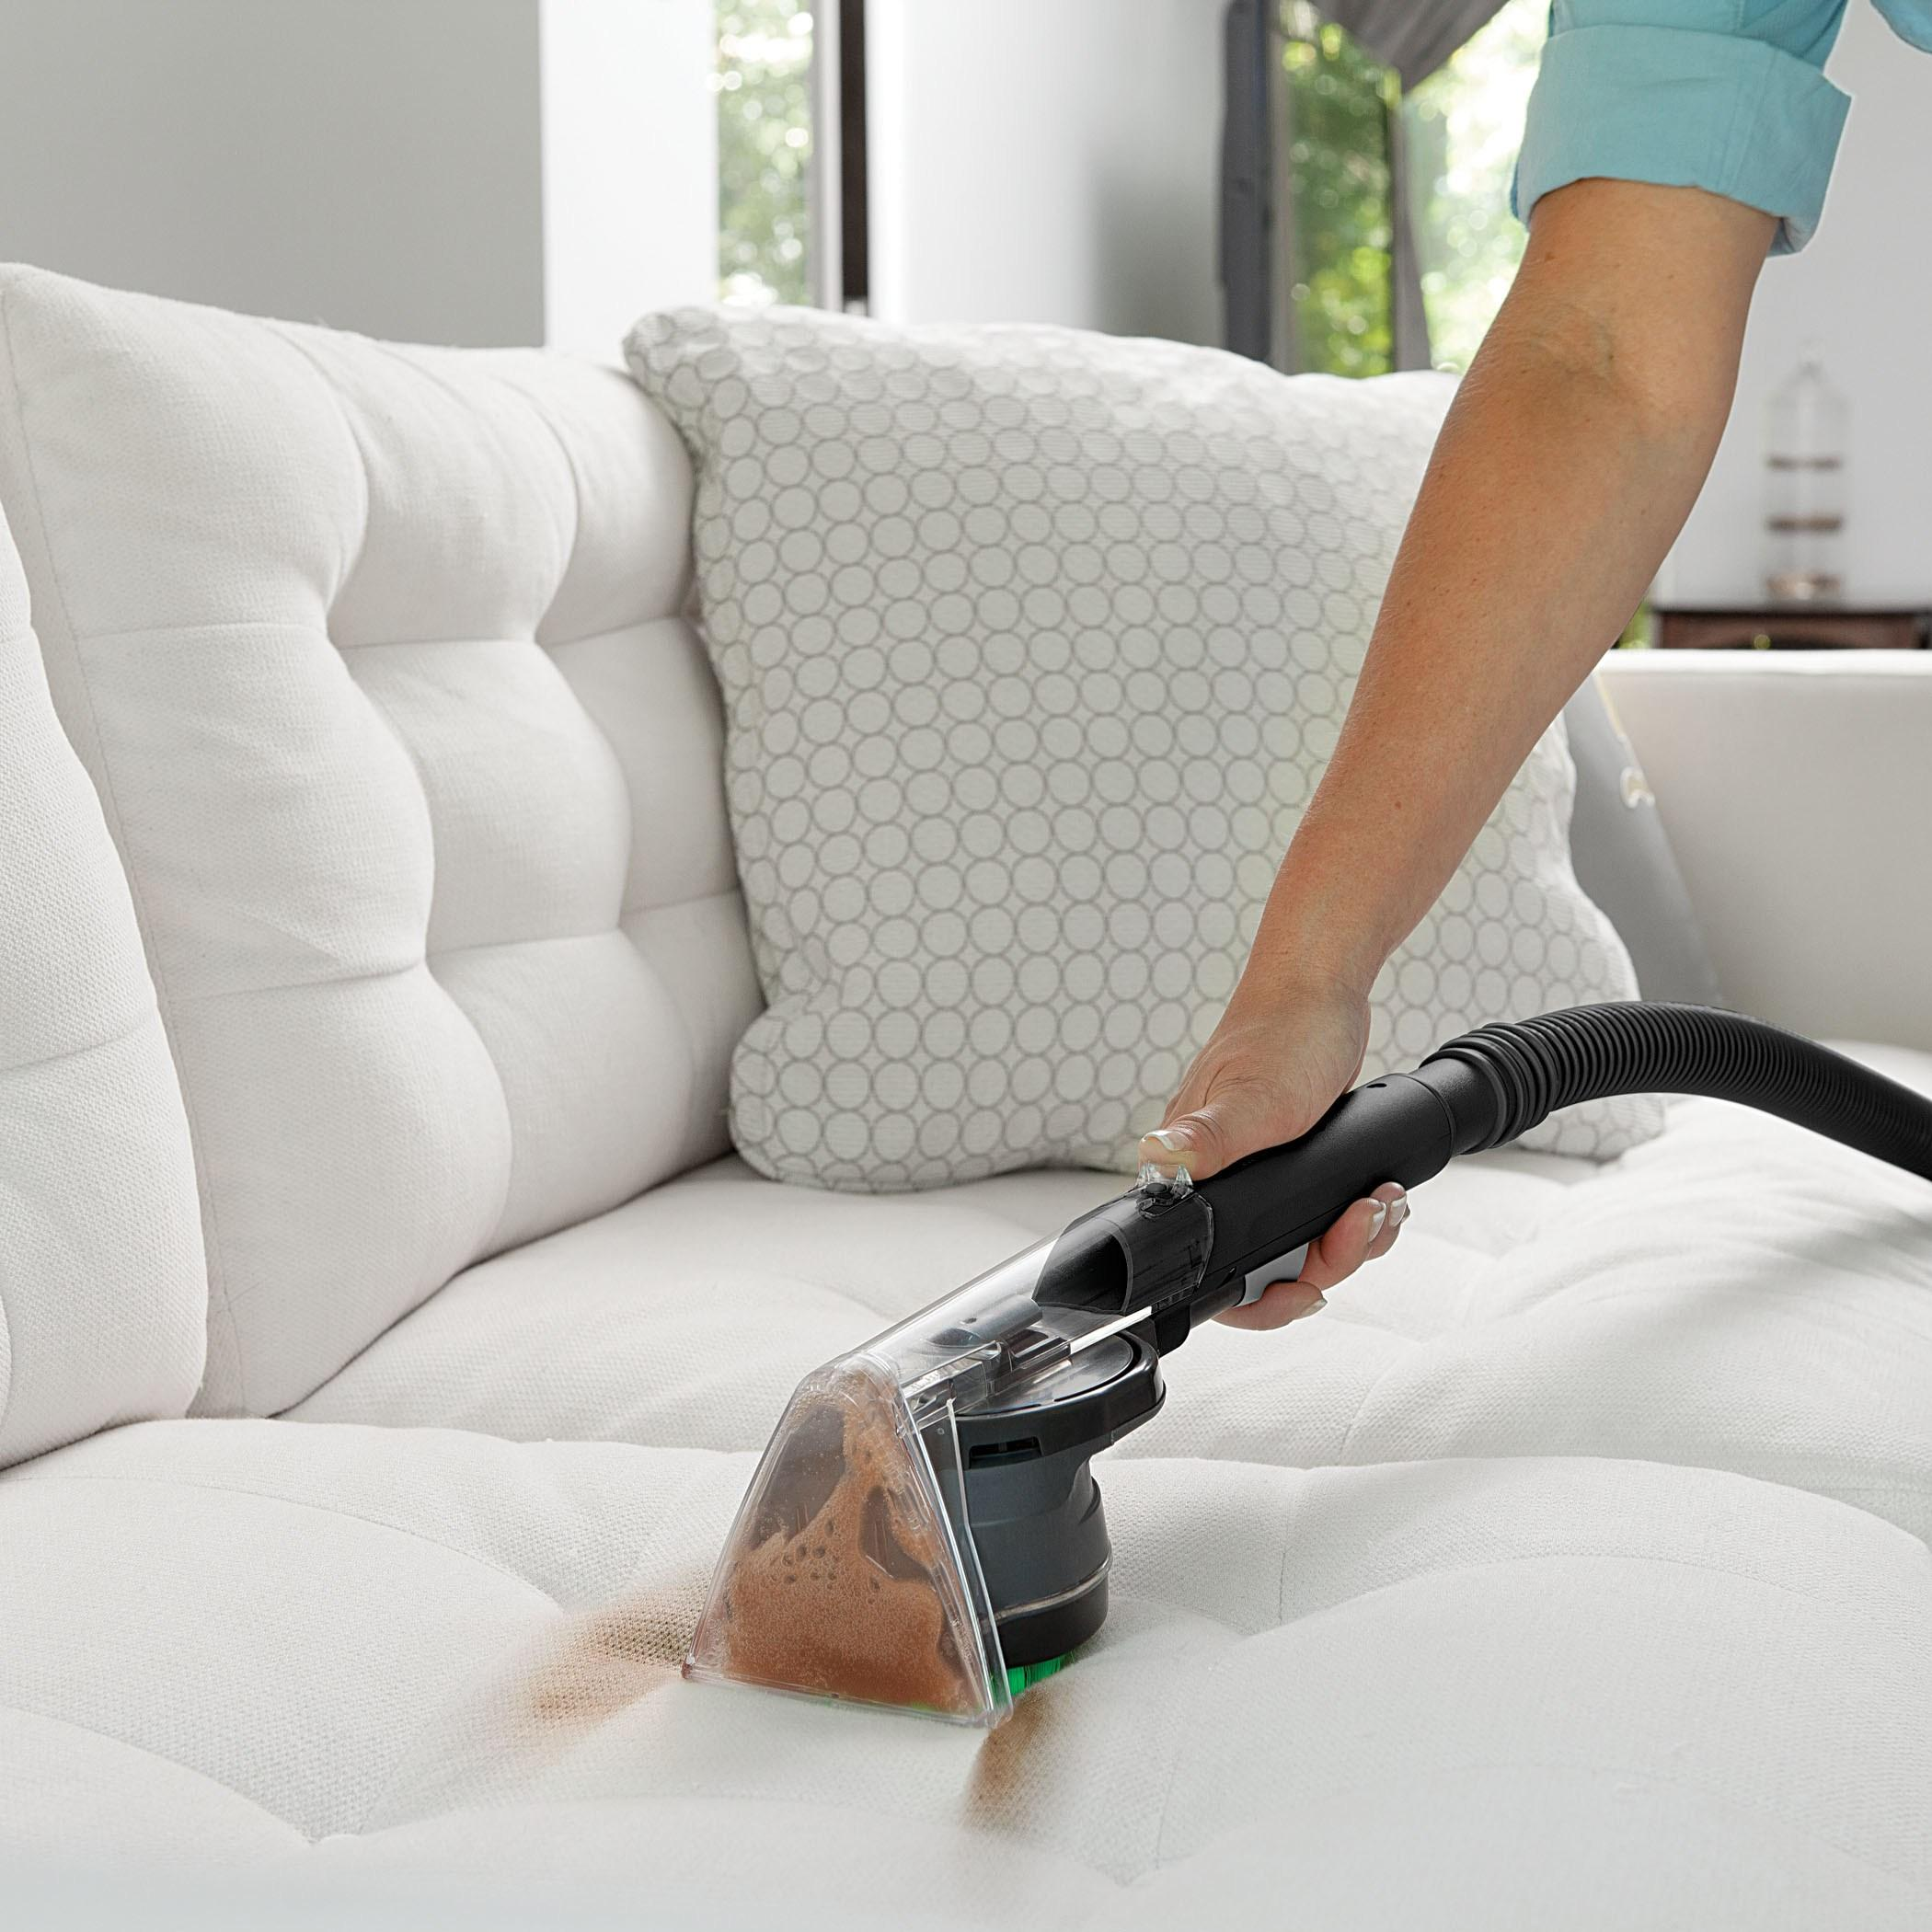 sofa cleaner wegner sofaer priser amazon hoover power scrub deluxe carpet